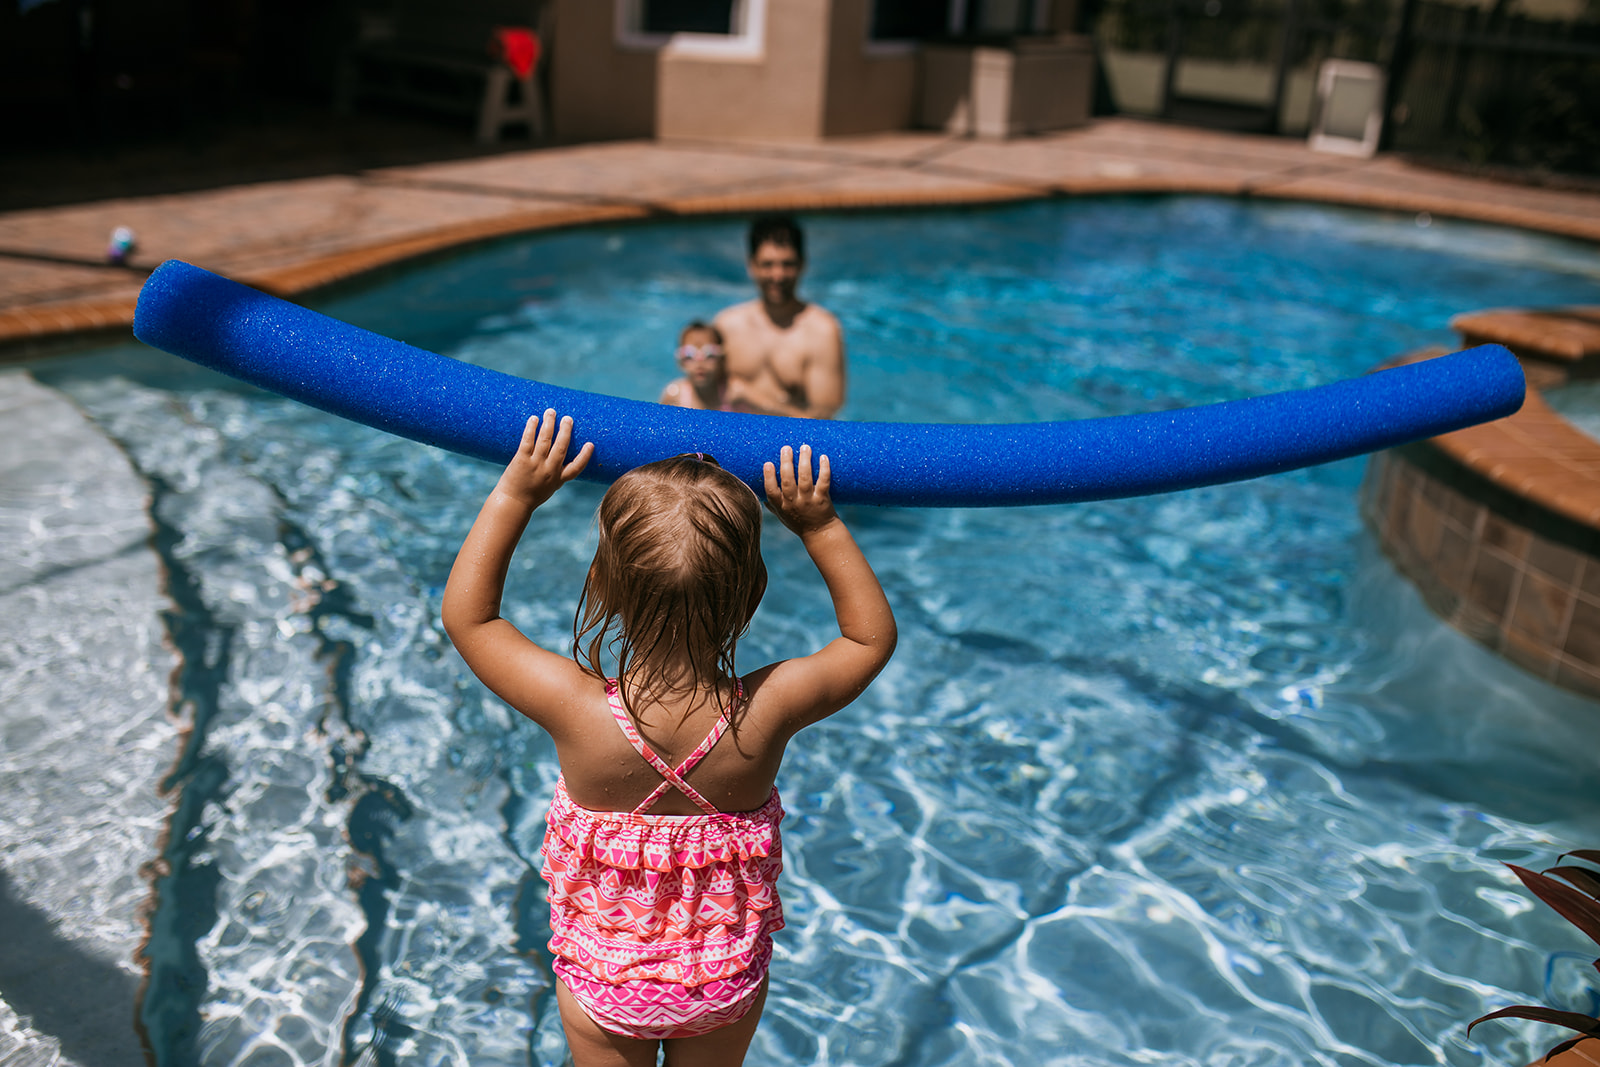 Toddler holds pool noodle as sister and father watch in the pool